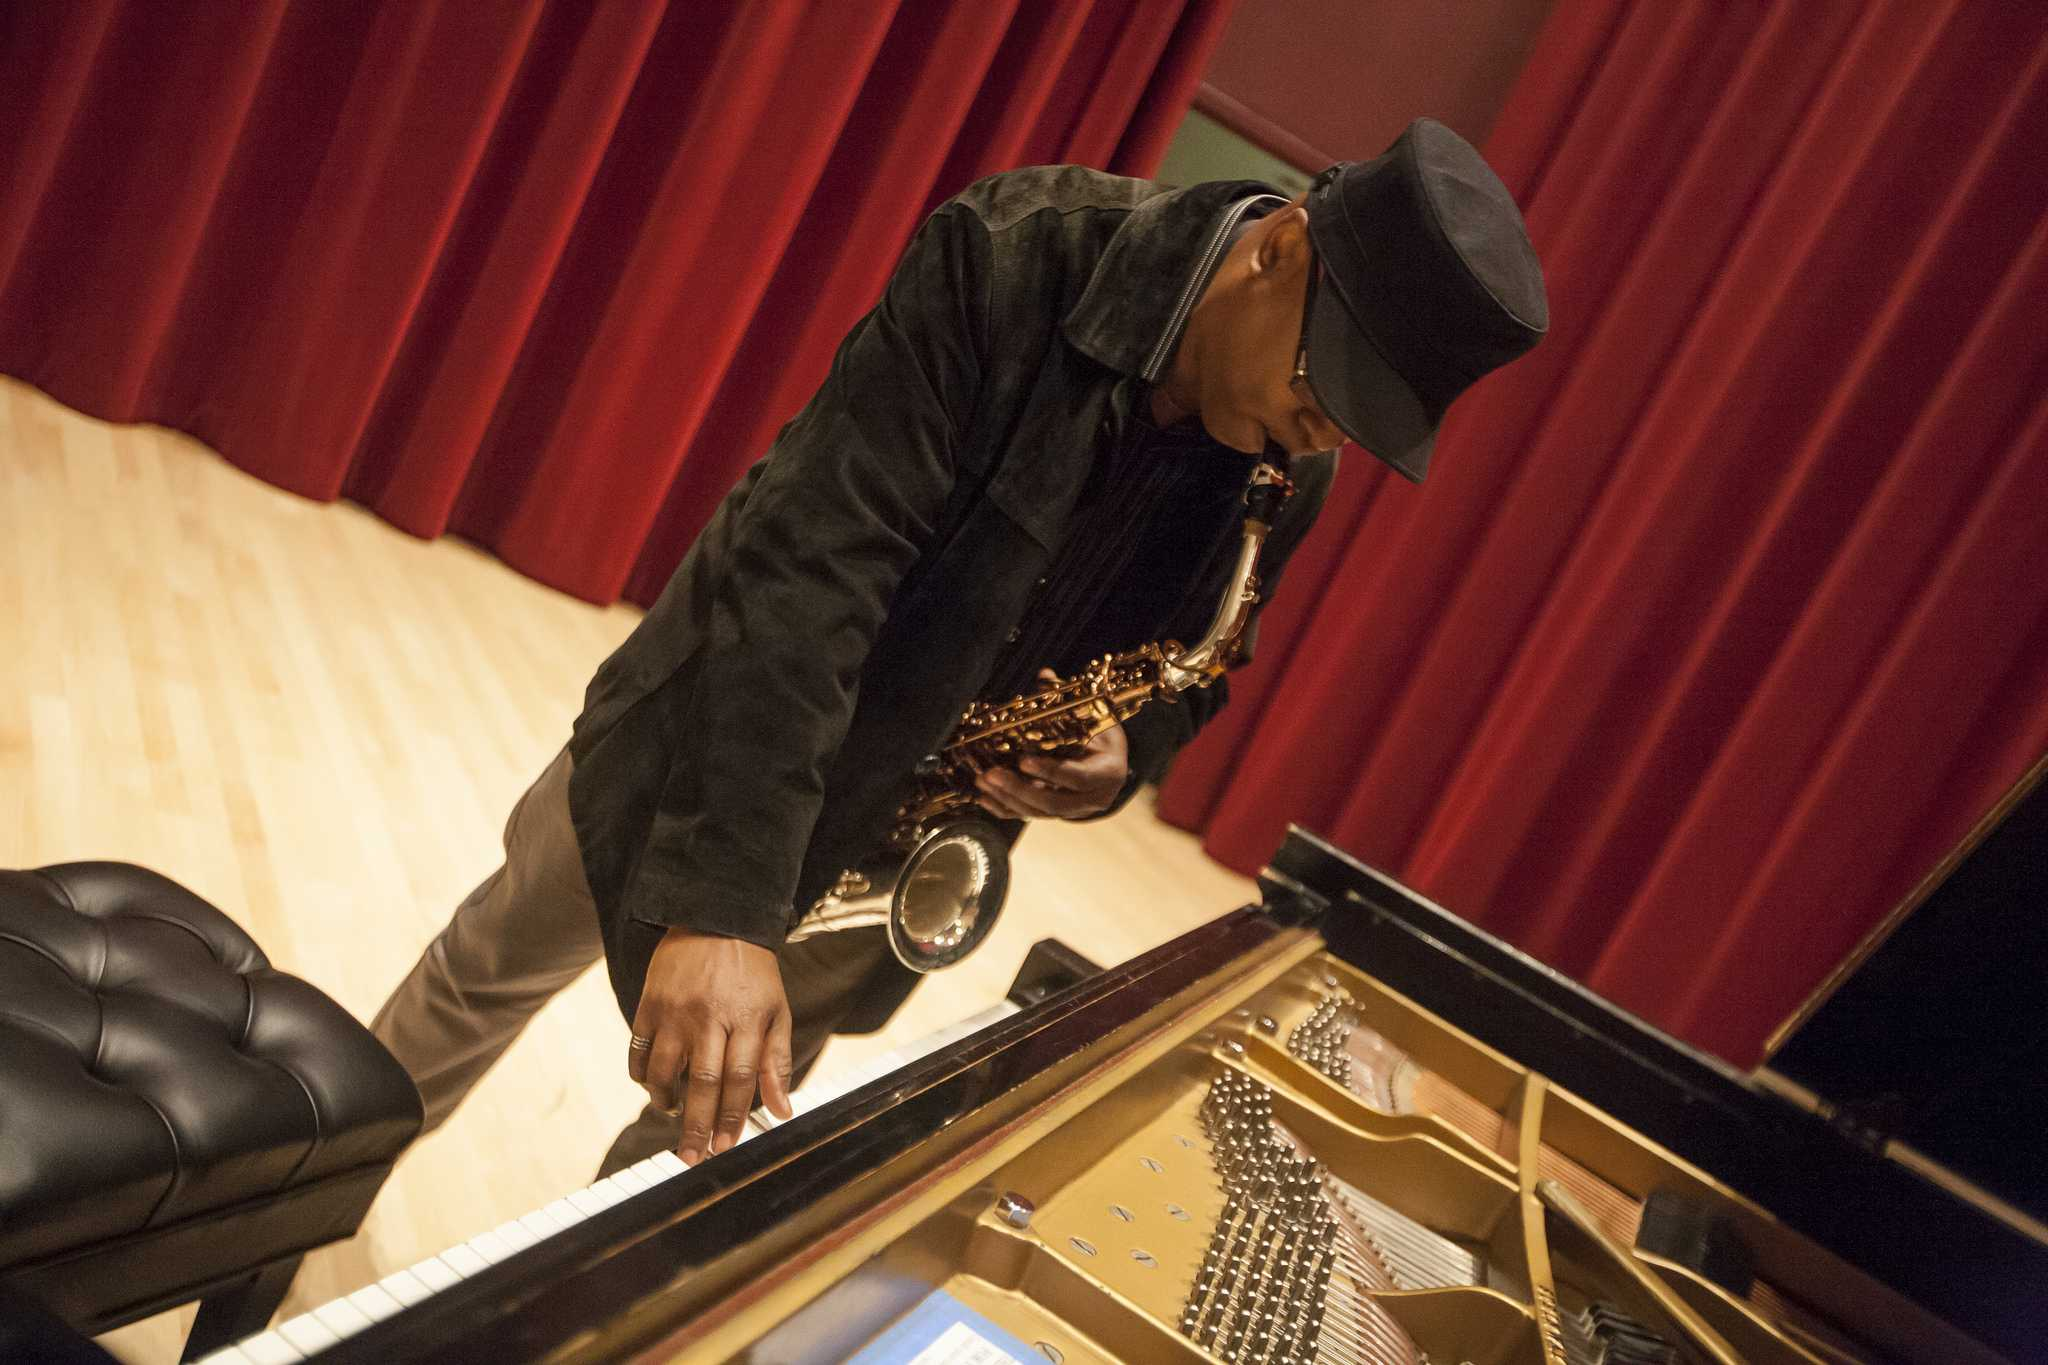 Renowned saxophonist lands in San Francisco, inspires young musicians with words and performance